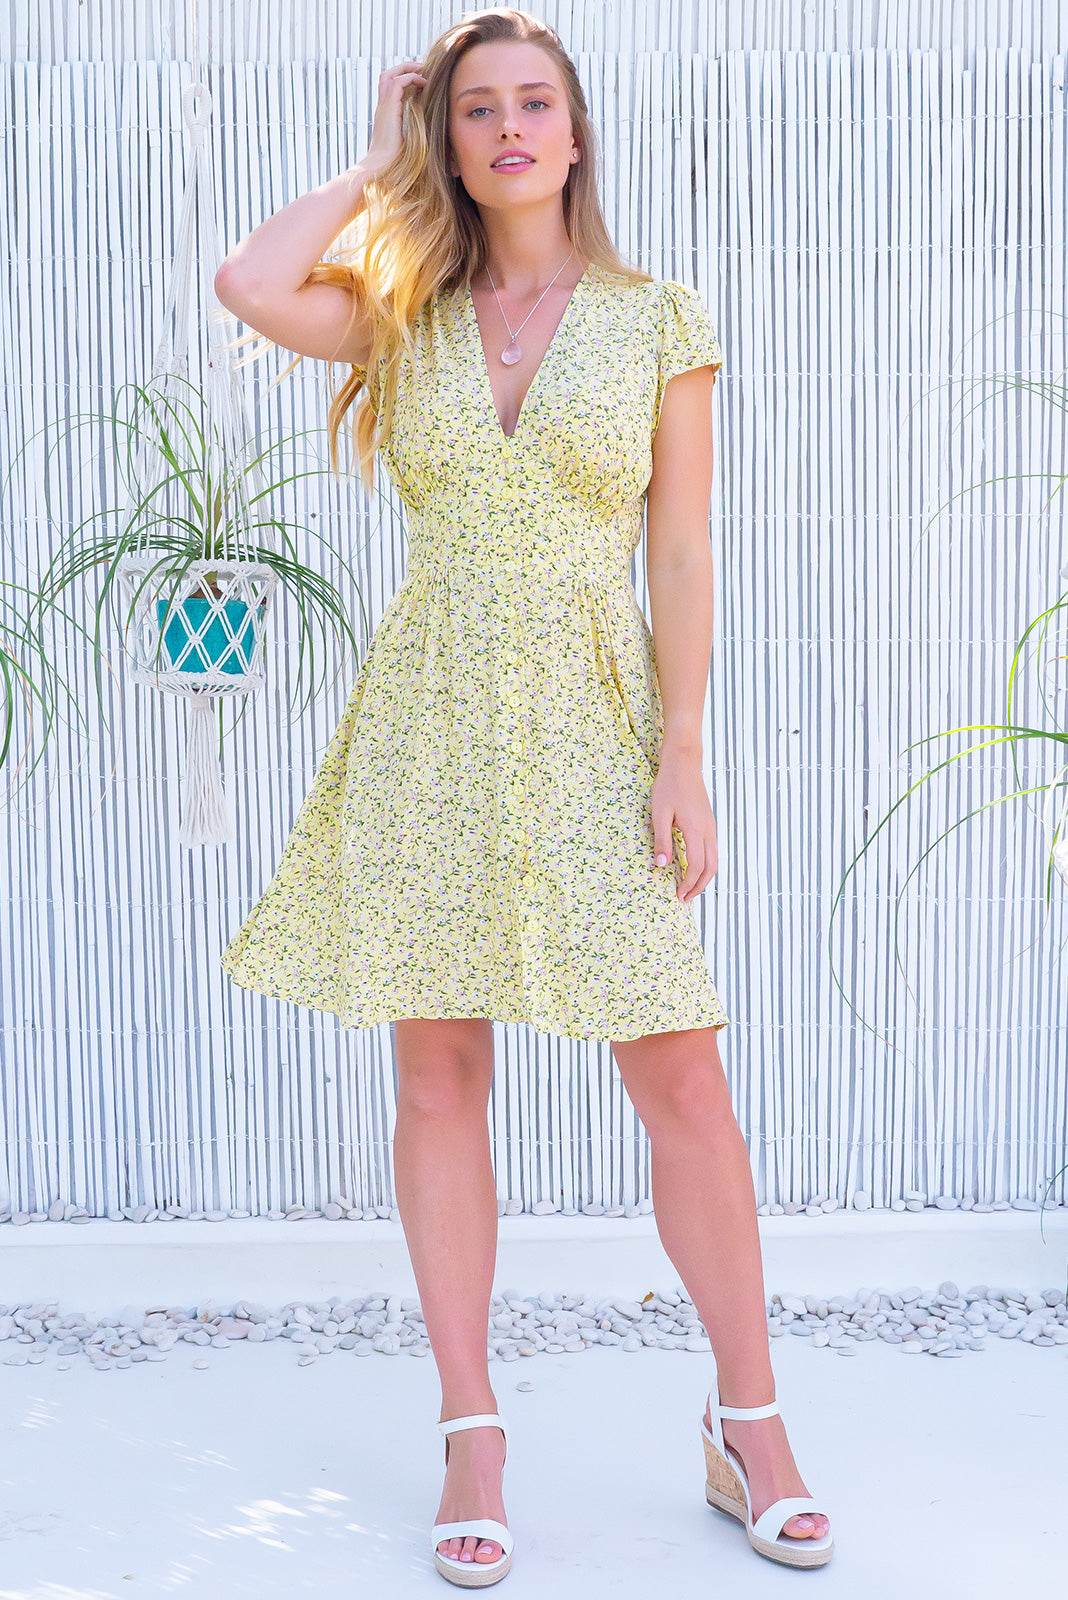 The Peggy Canary Yellow Dress features functional button front, cap sleeves, softly fitted basque waist, side pocket and 100% viscose in yellow base with ditzy floral print.